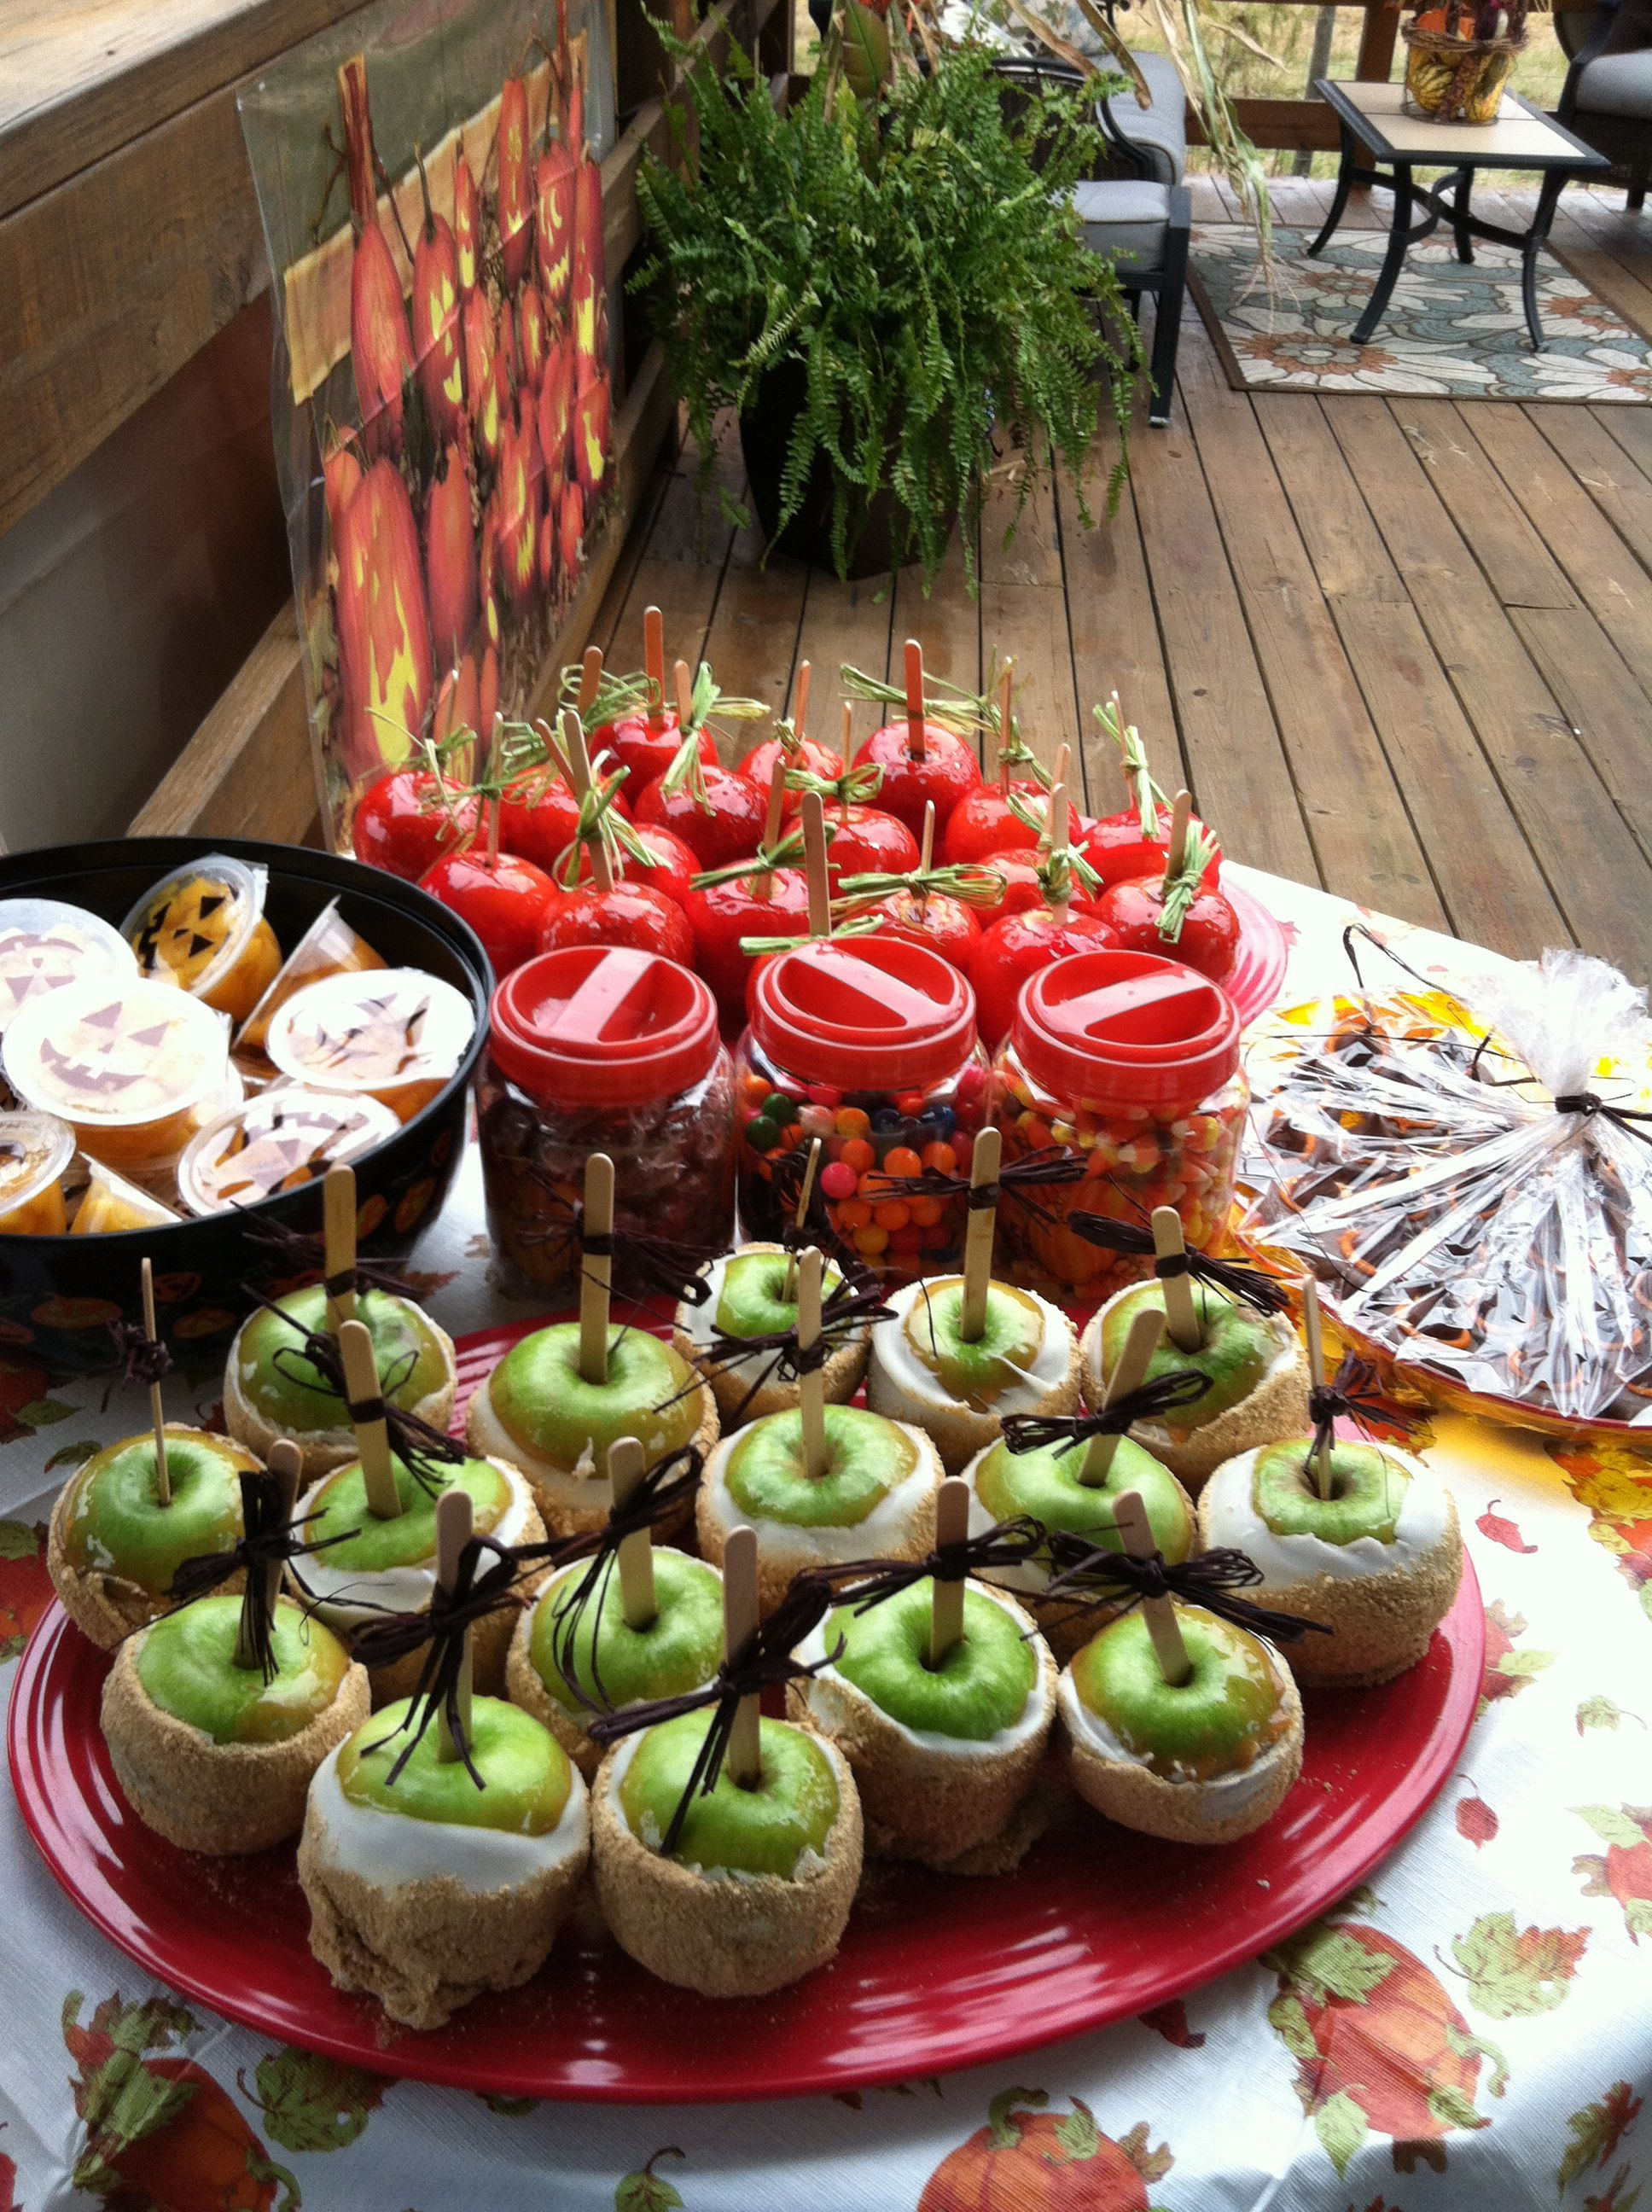 Homemade Candy Apples Were The Hot Item Inspired From Dollywood The Granny Smith Apples Dipped In Carmel W Homemade Candies Granny Smith Apples Apple Dip